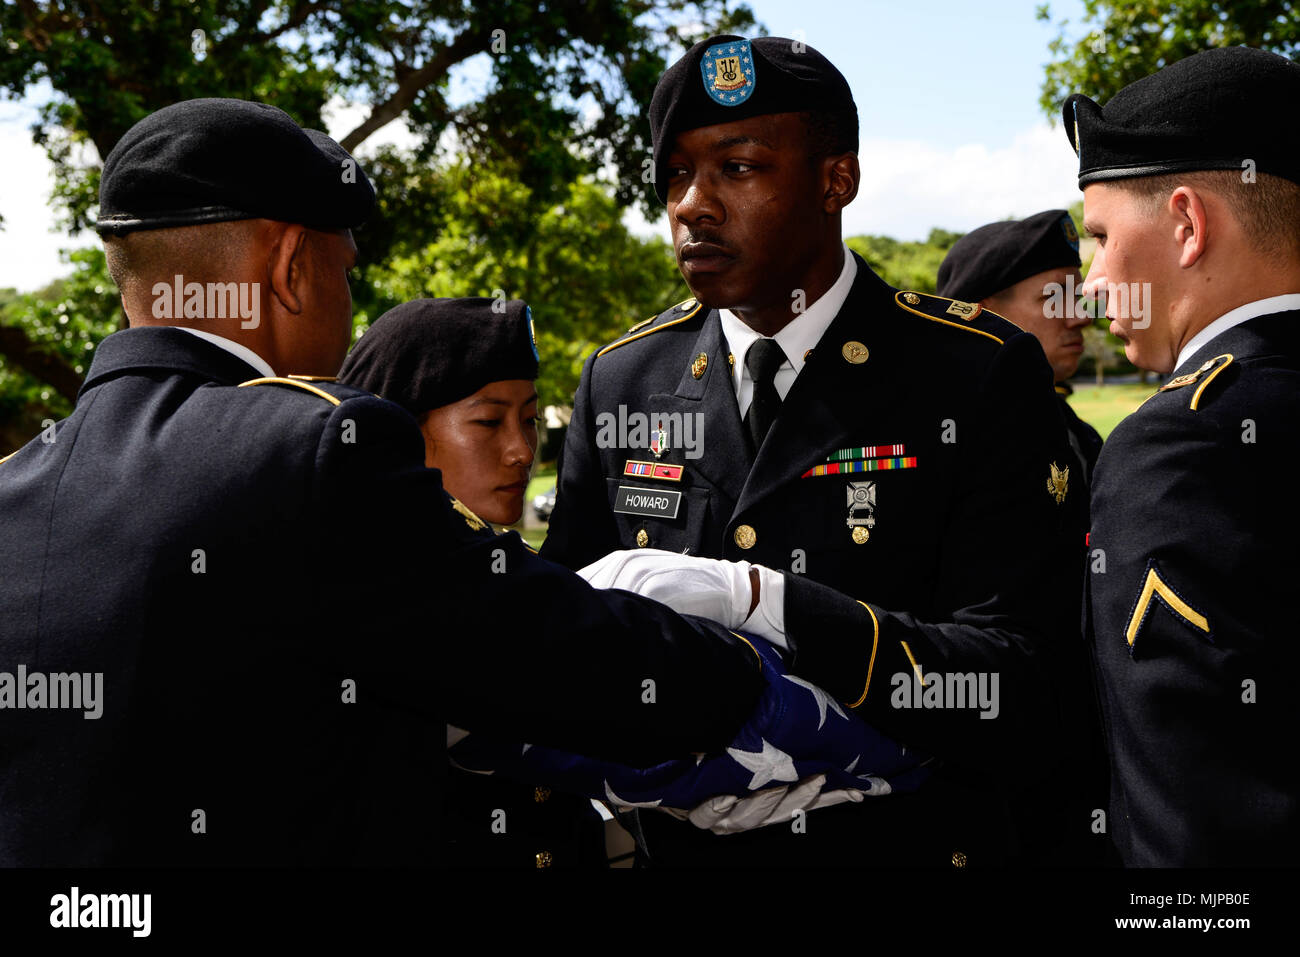 U.S. Soldiers assigned to 225th Brigade Support Battalion, 2nd Infantry Brigade Combat Team, 25th Infantry Division fold the burial flag of U.S. Army Pfc. Albert E. Atkins, Dec. 15, 2017, at the National Memorial Cemetery of the Pacific, Honolulu, Hawaii. On May 23, 1951, Atkins, a member of Company E, 2nd Battalion, 187th Airborne Infantry Regiment, 187th Airborne Regimental Combat Team, engaged enemy forces with his unit near Mae-Bong, South Korea. Atkins and two other soldiers from his company were reported missing in action. Atkins was recently identified through DNA analysis with the help - Stock Image